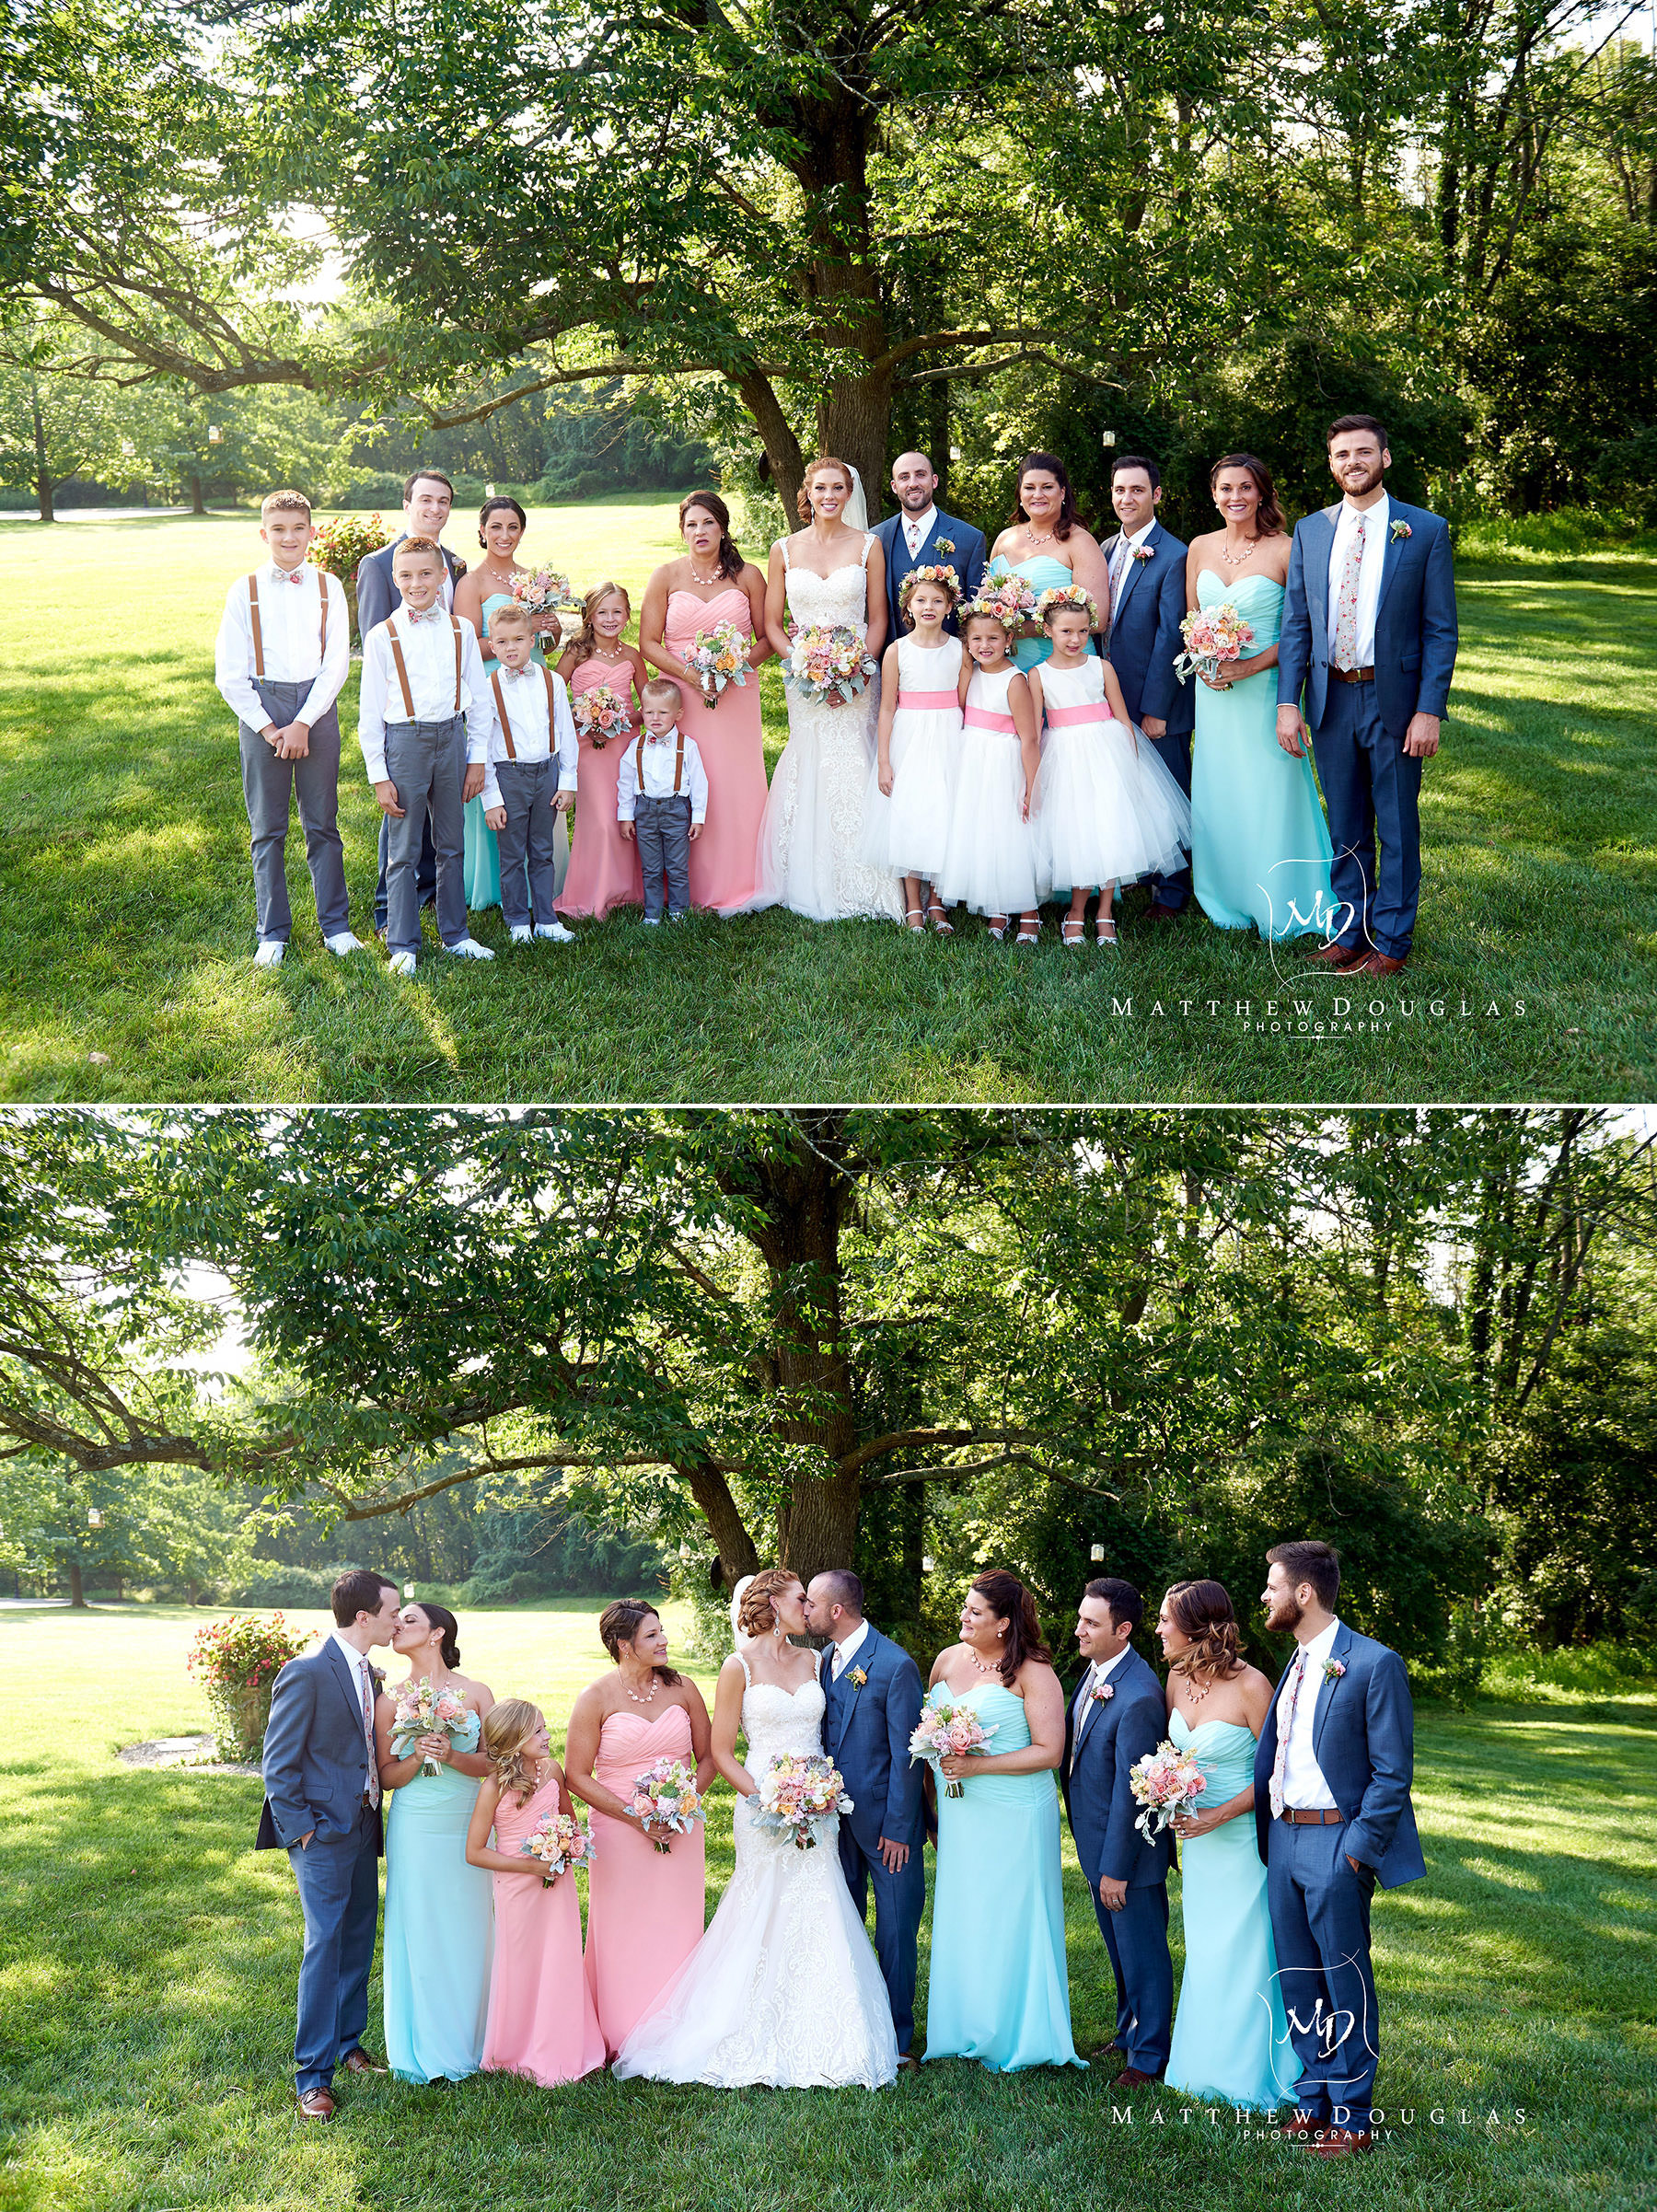 wedding party photos at The Farmhouse at The Grand Colonial